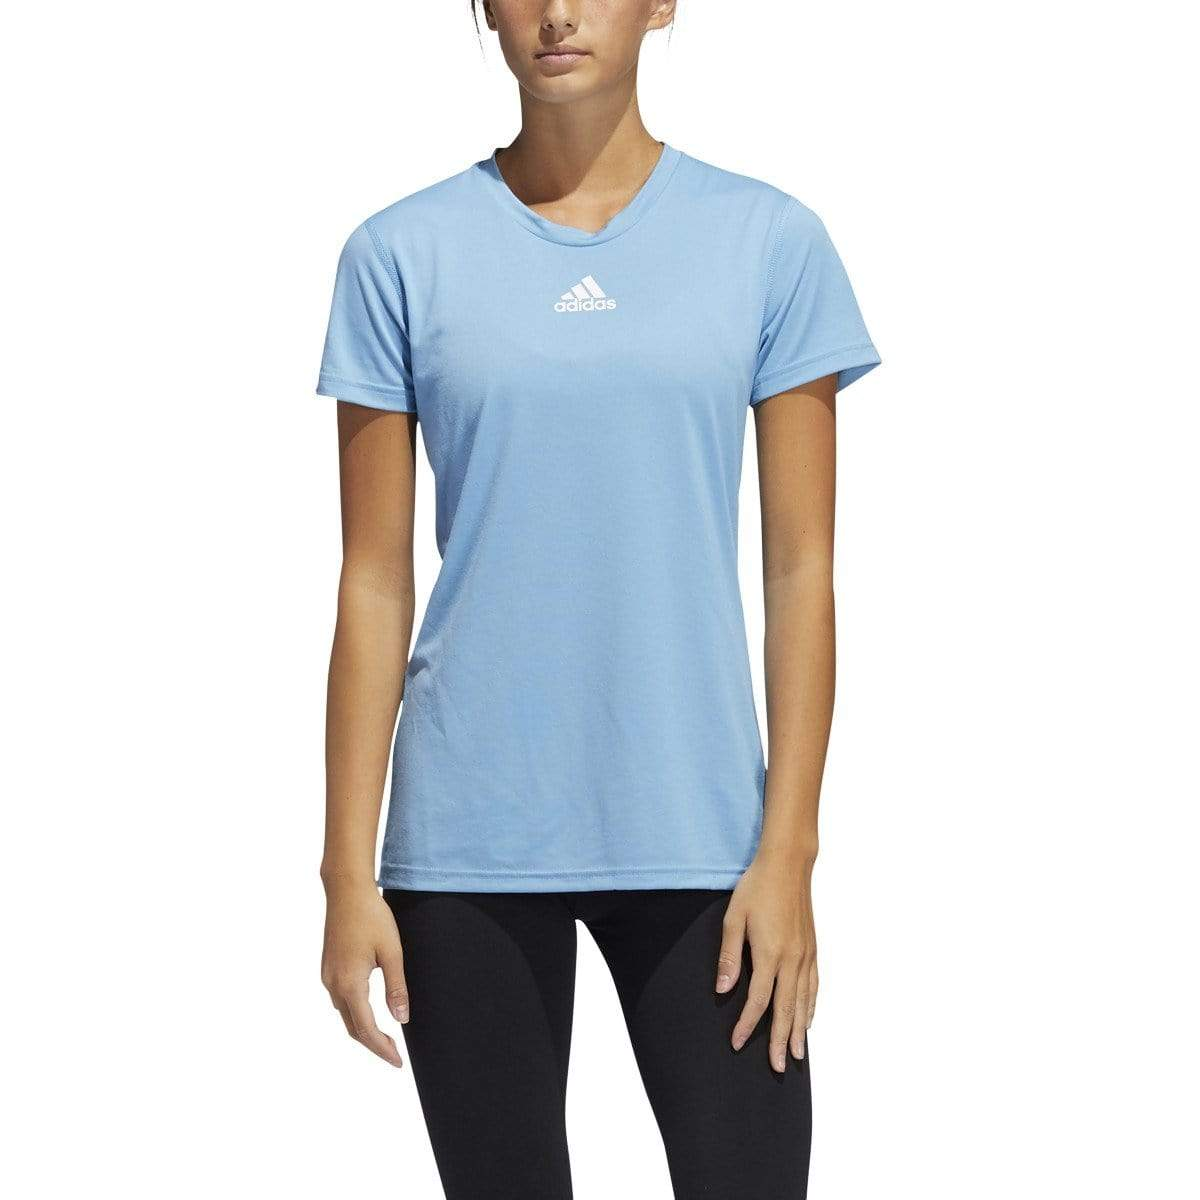 adidas T-shirts XS / Light Blue/White adidas - Women's Creator Short Sleeve Tee